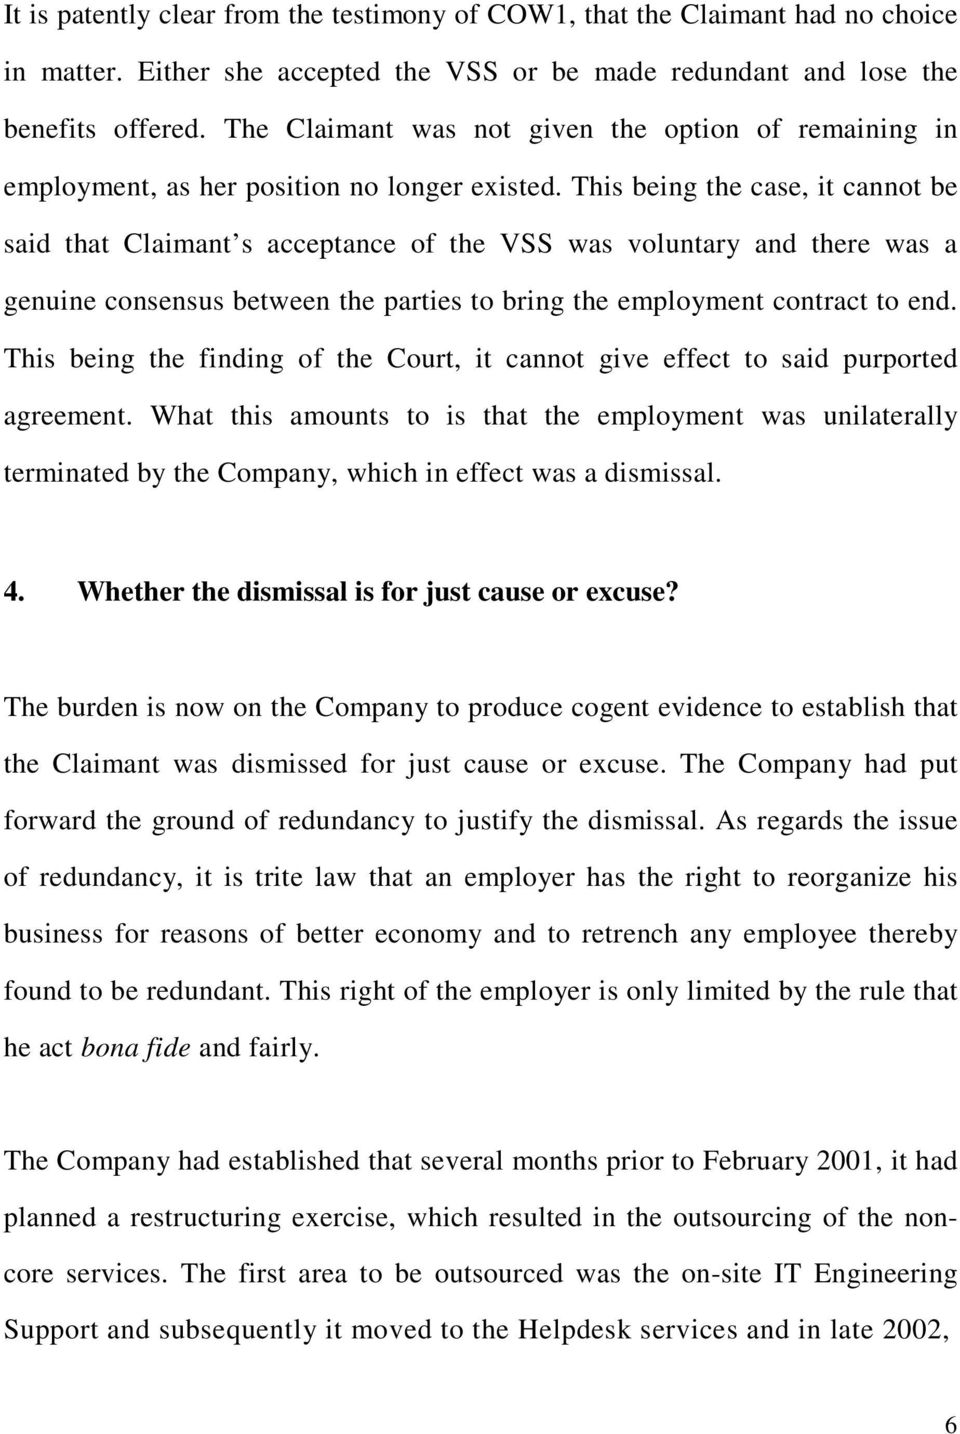 This being the case, it cannot be said that Claimant s acceptance of the VSS was voluntary and there was a genuine consensus between the parties to bring the employment contract to end.